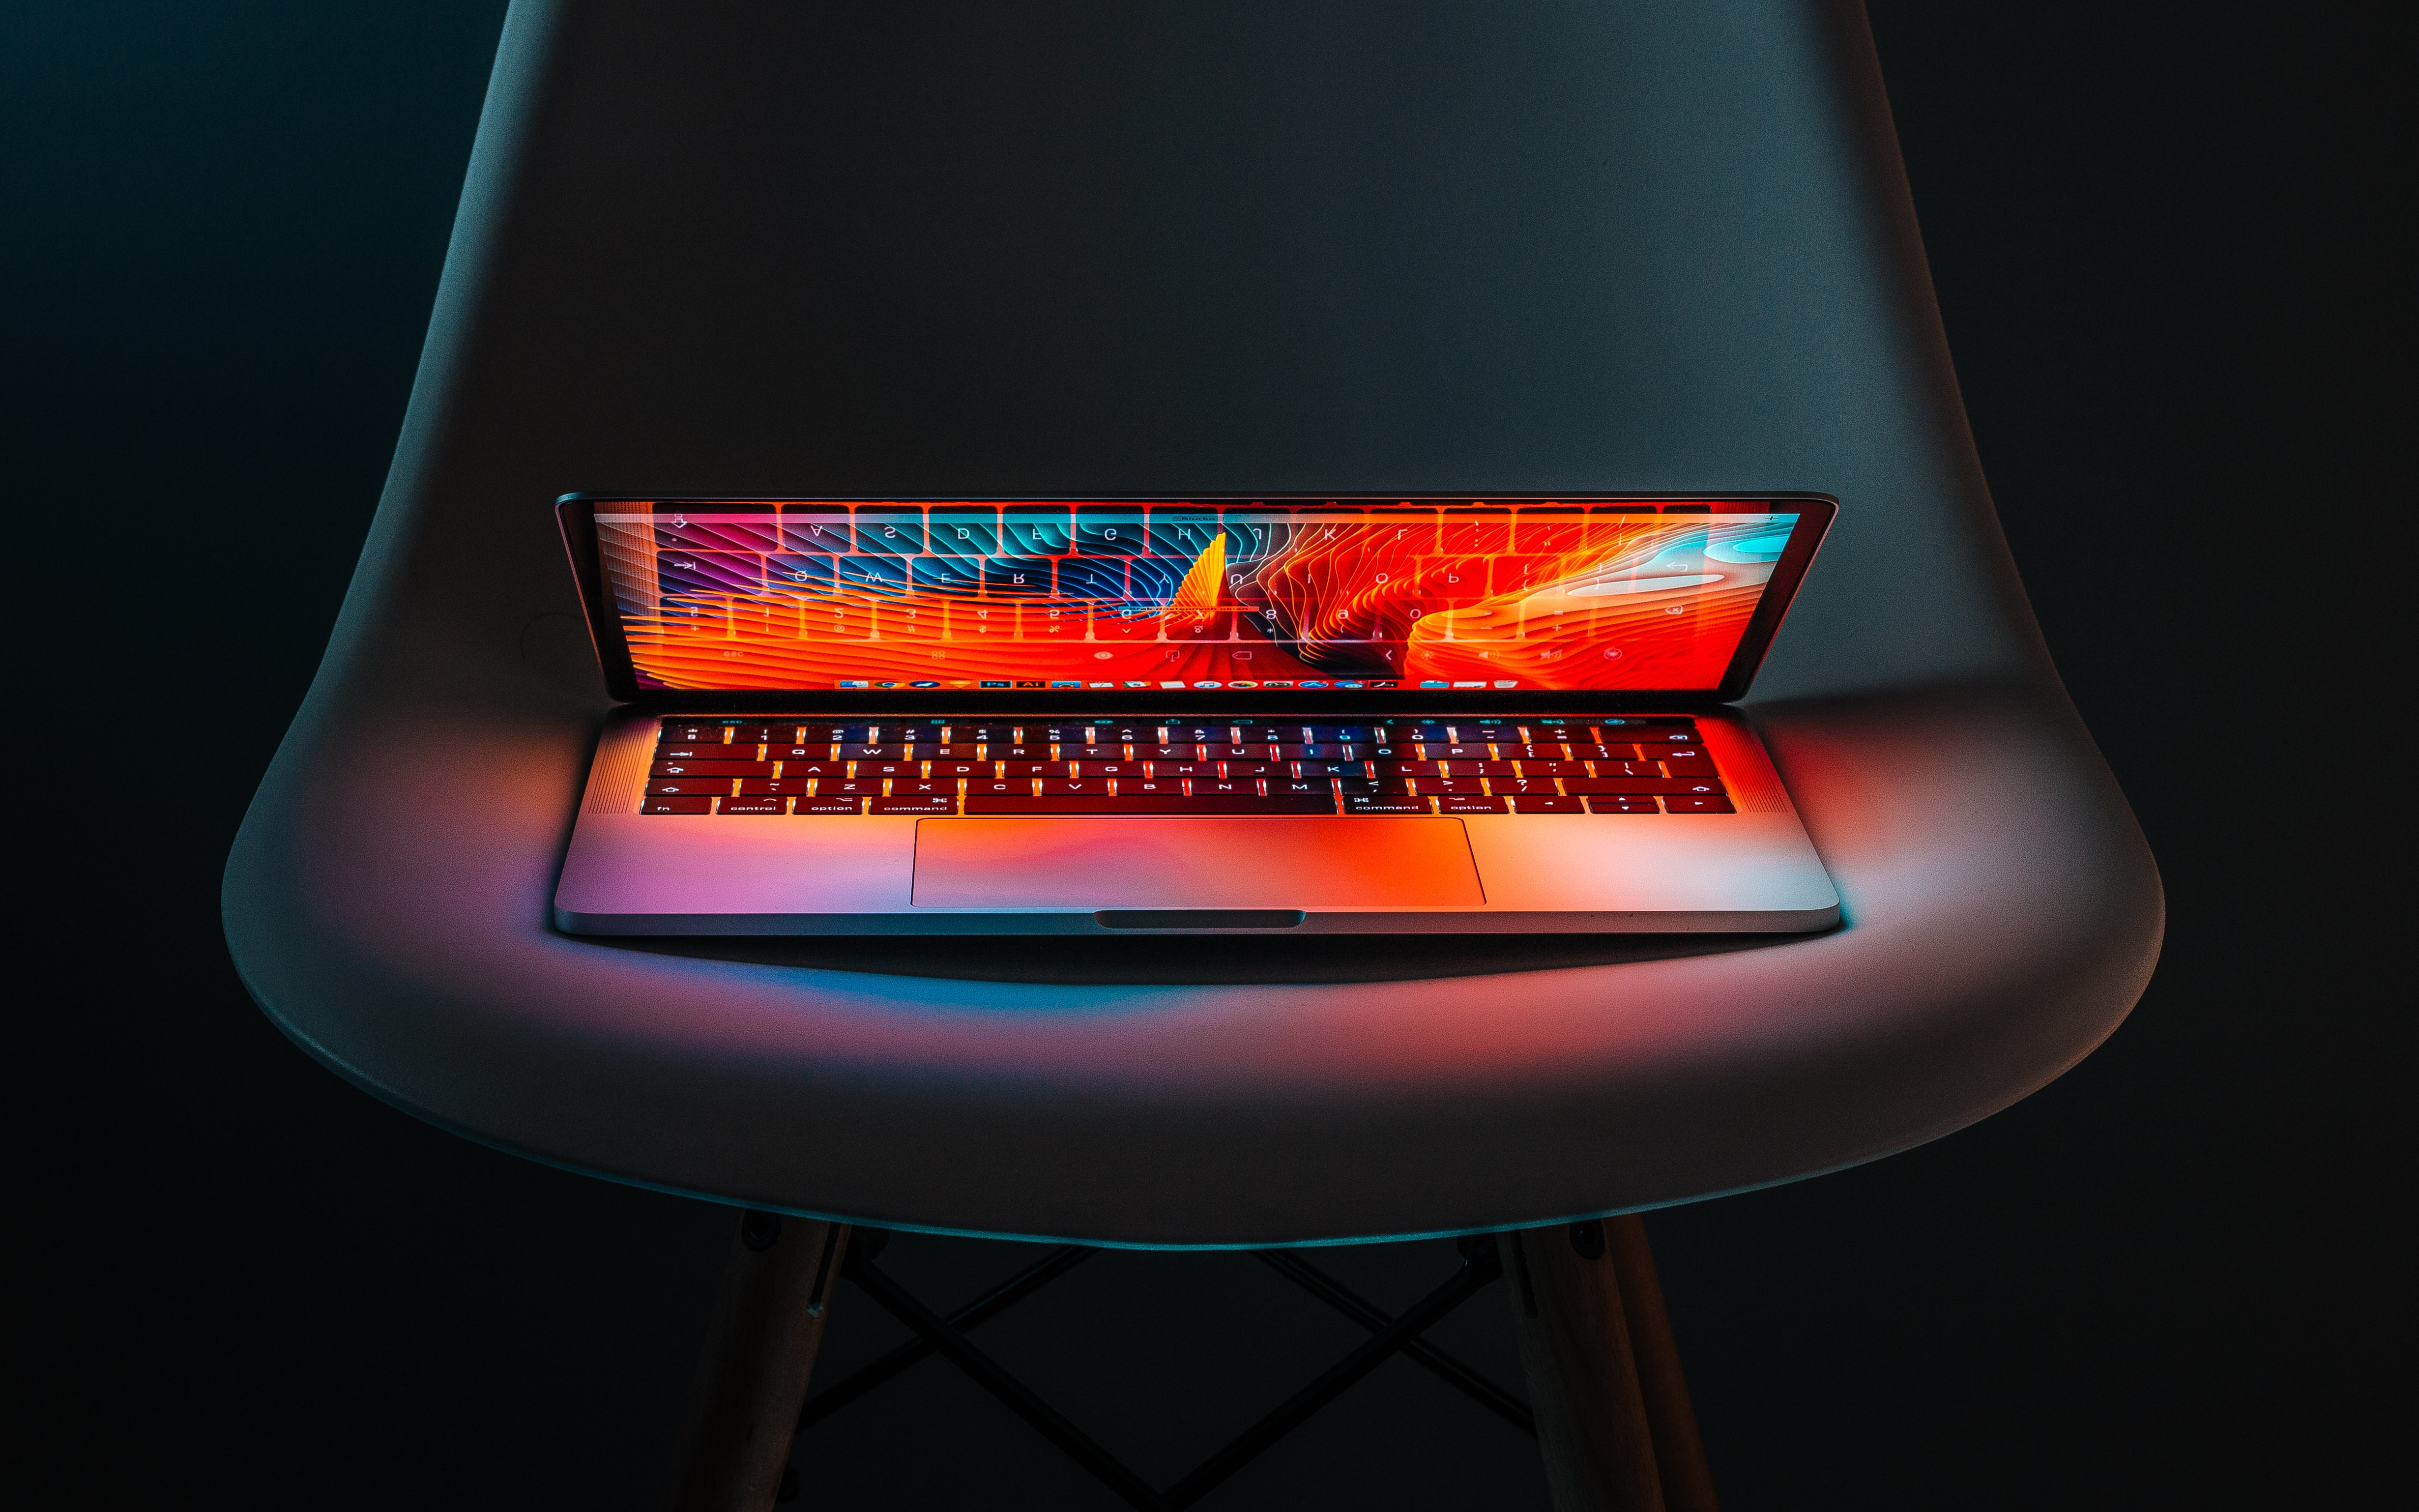 A laptop sitting on a chair partially open, glowing, in the dark